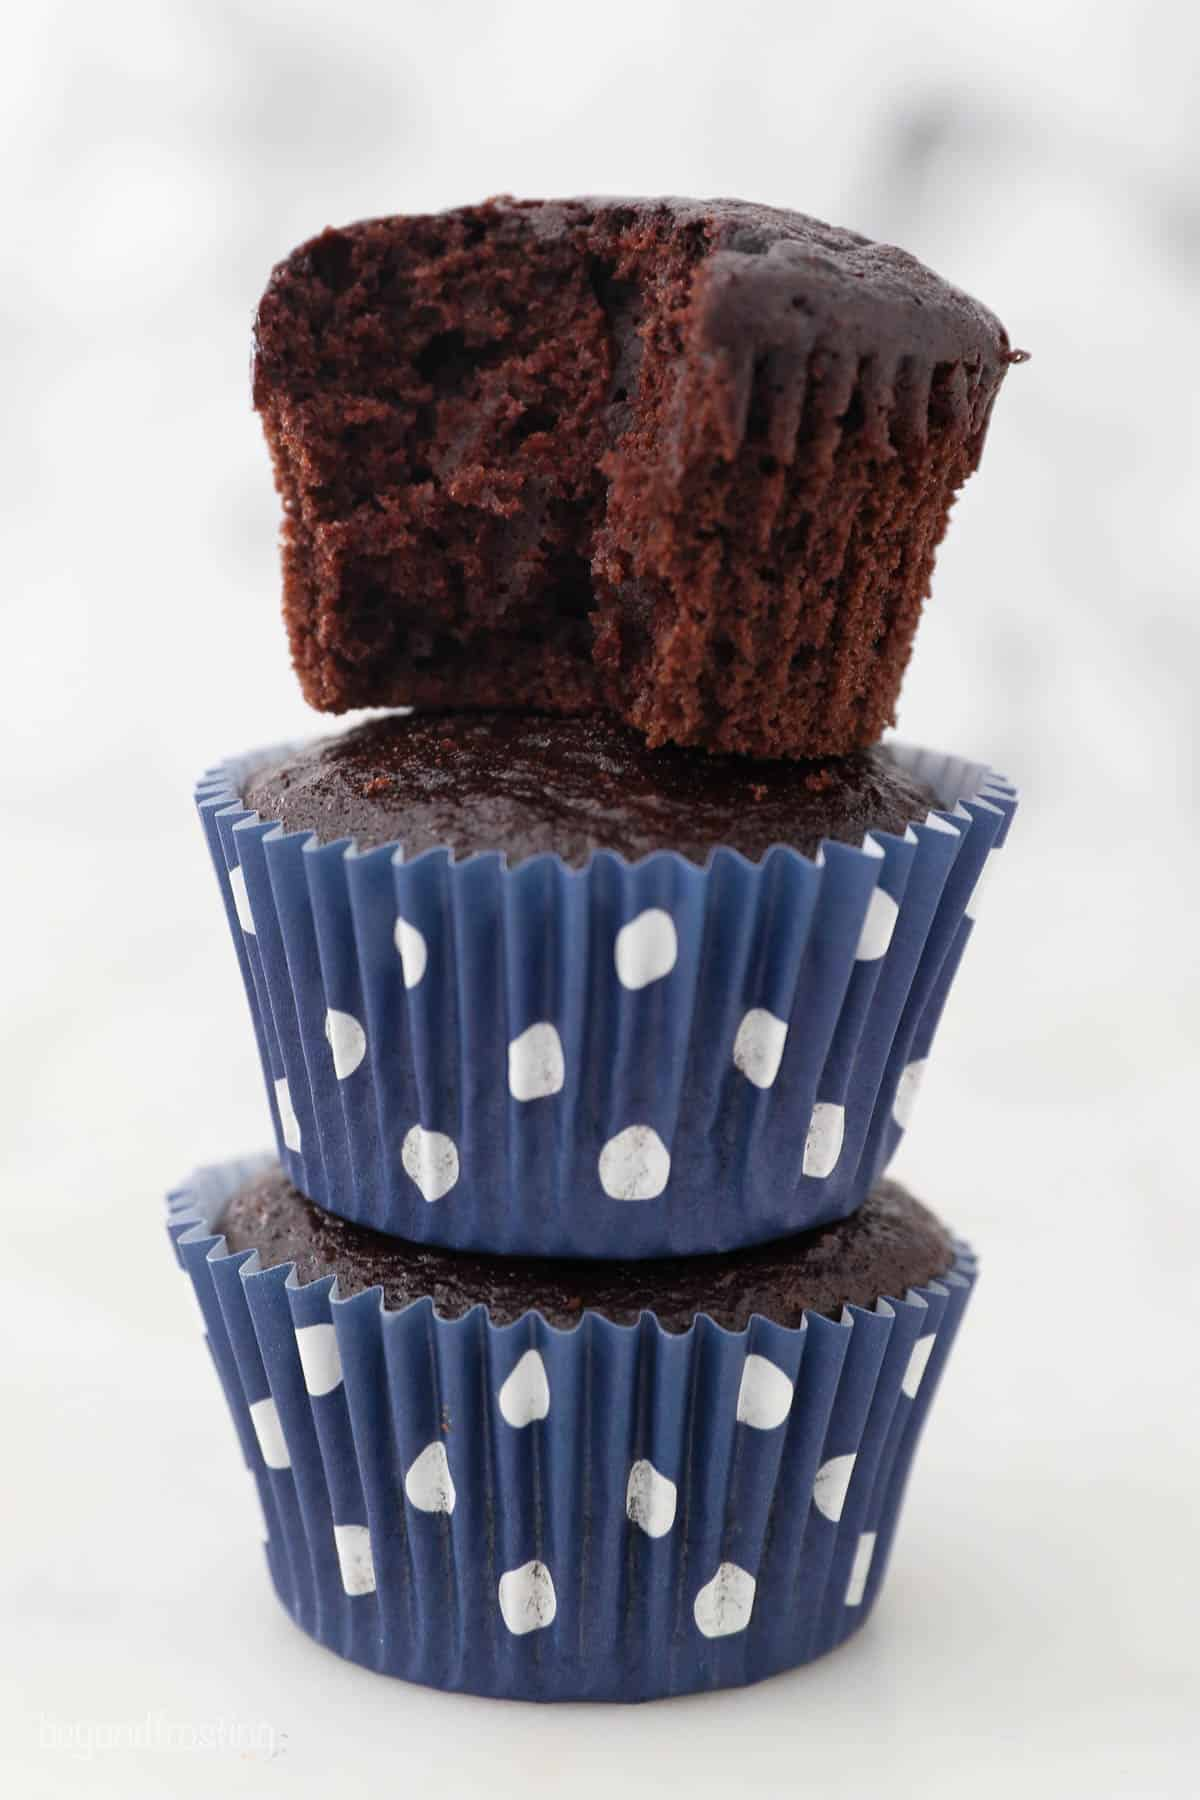 3 stacked chocolate cupcakes, the top one is unwrapped with a bite removed